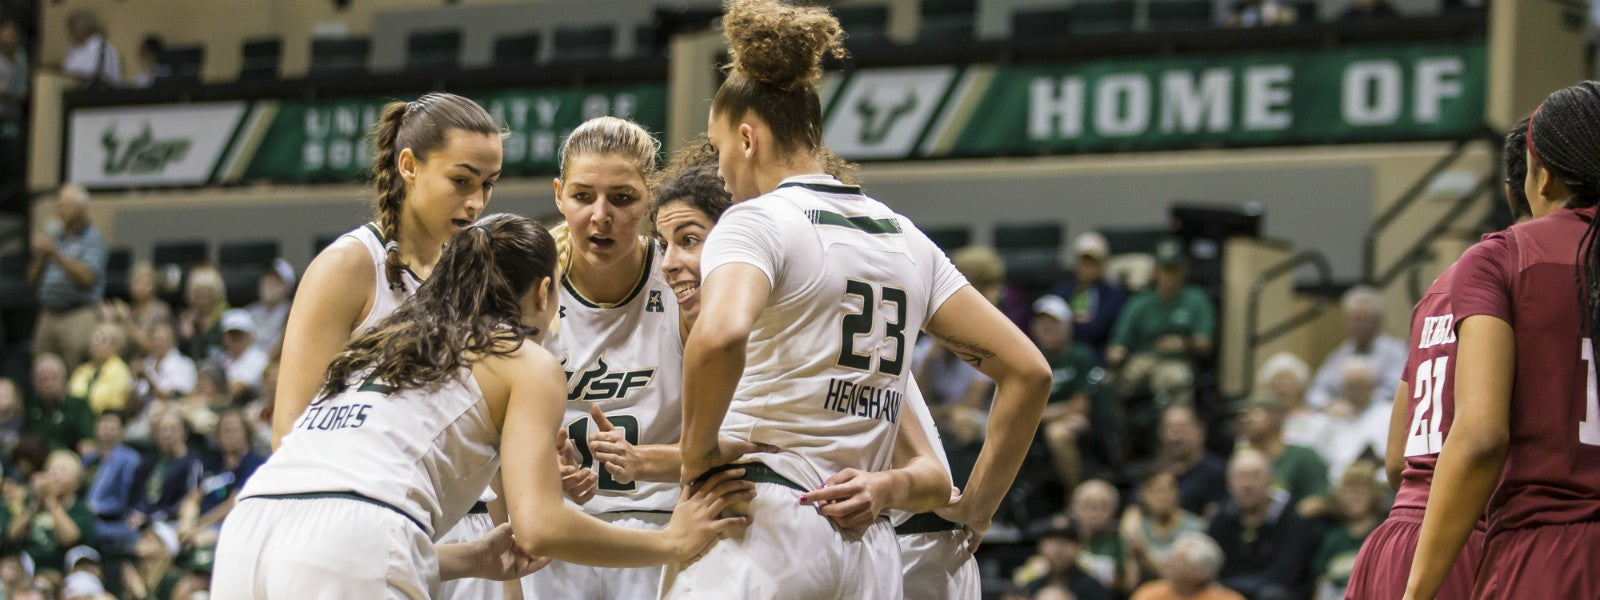 USF Women's Basketball vs. UCONN